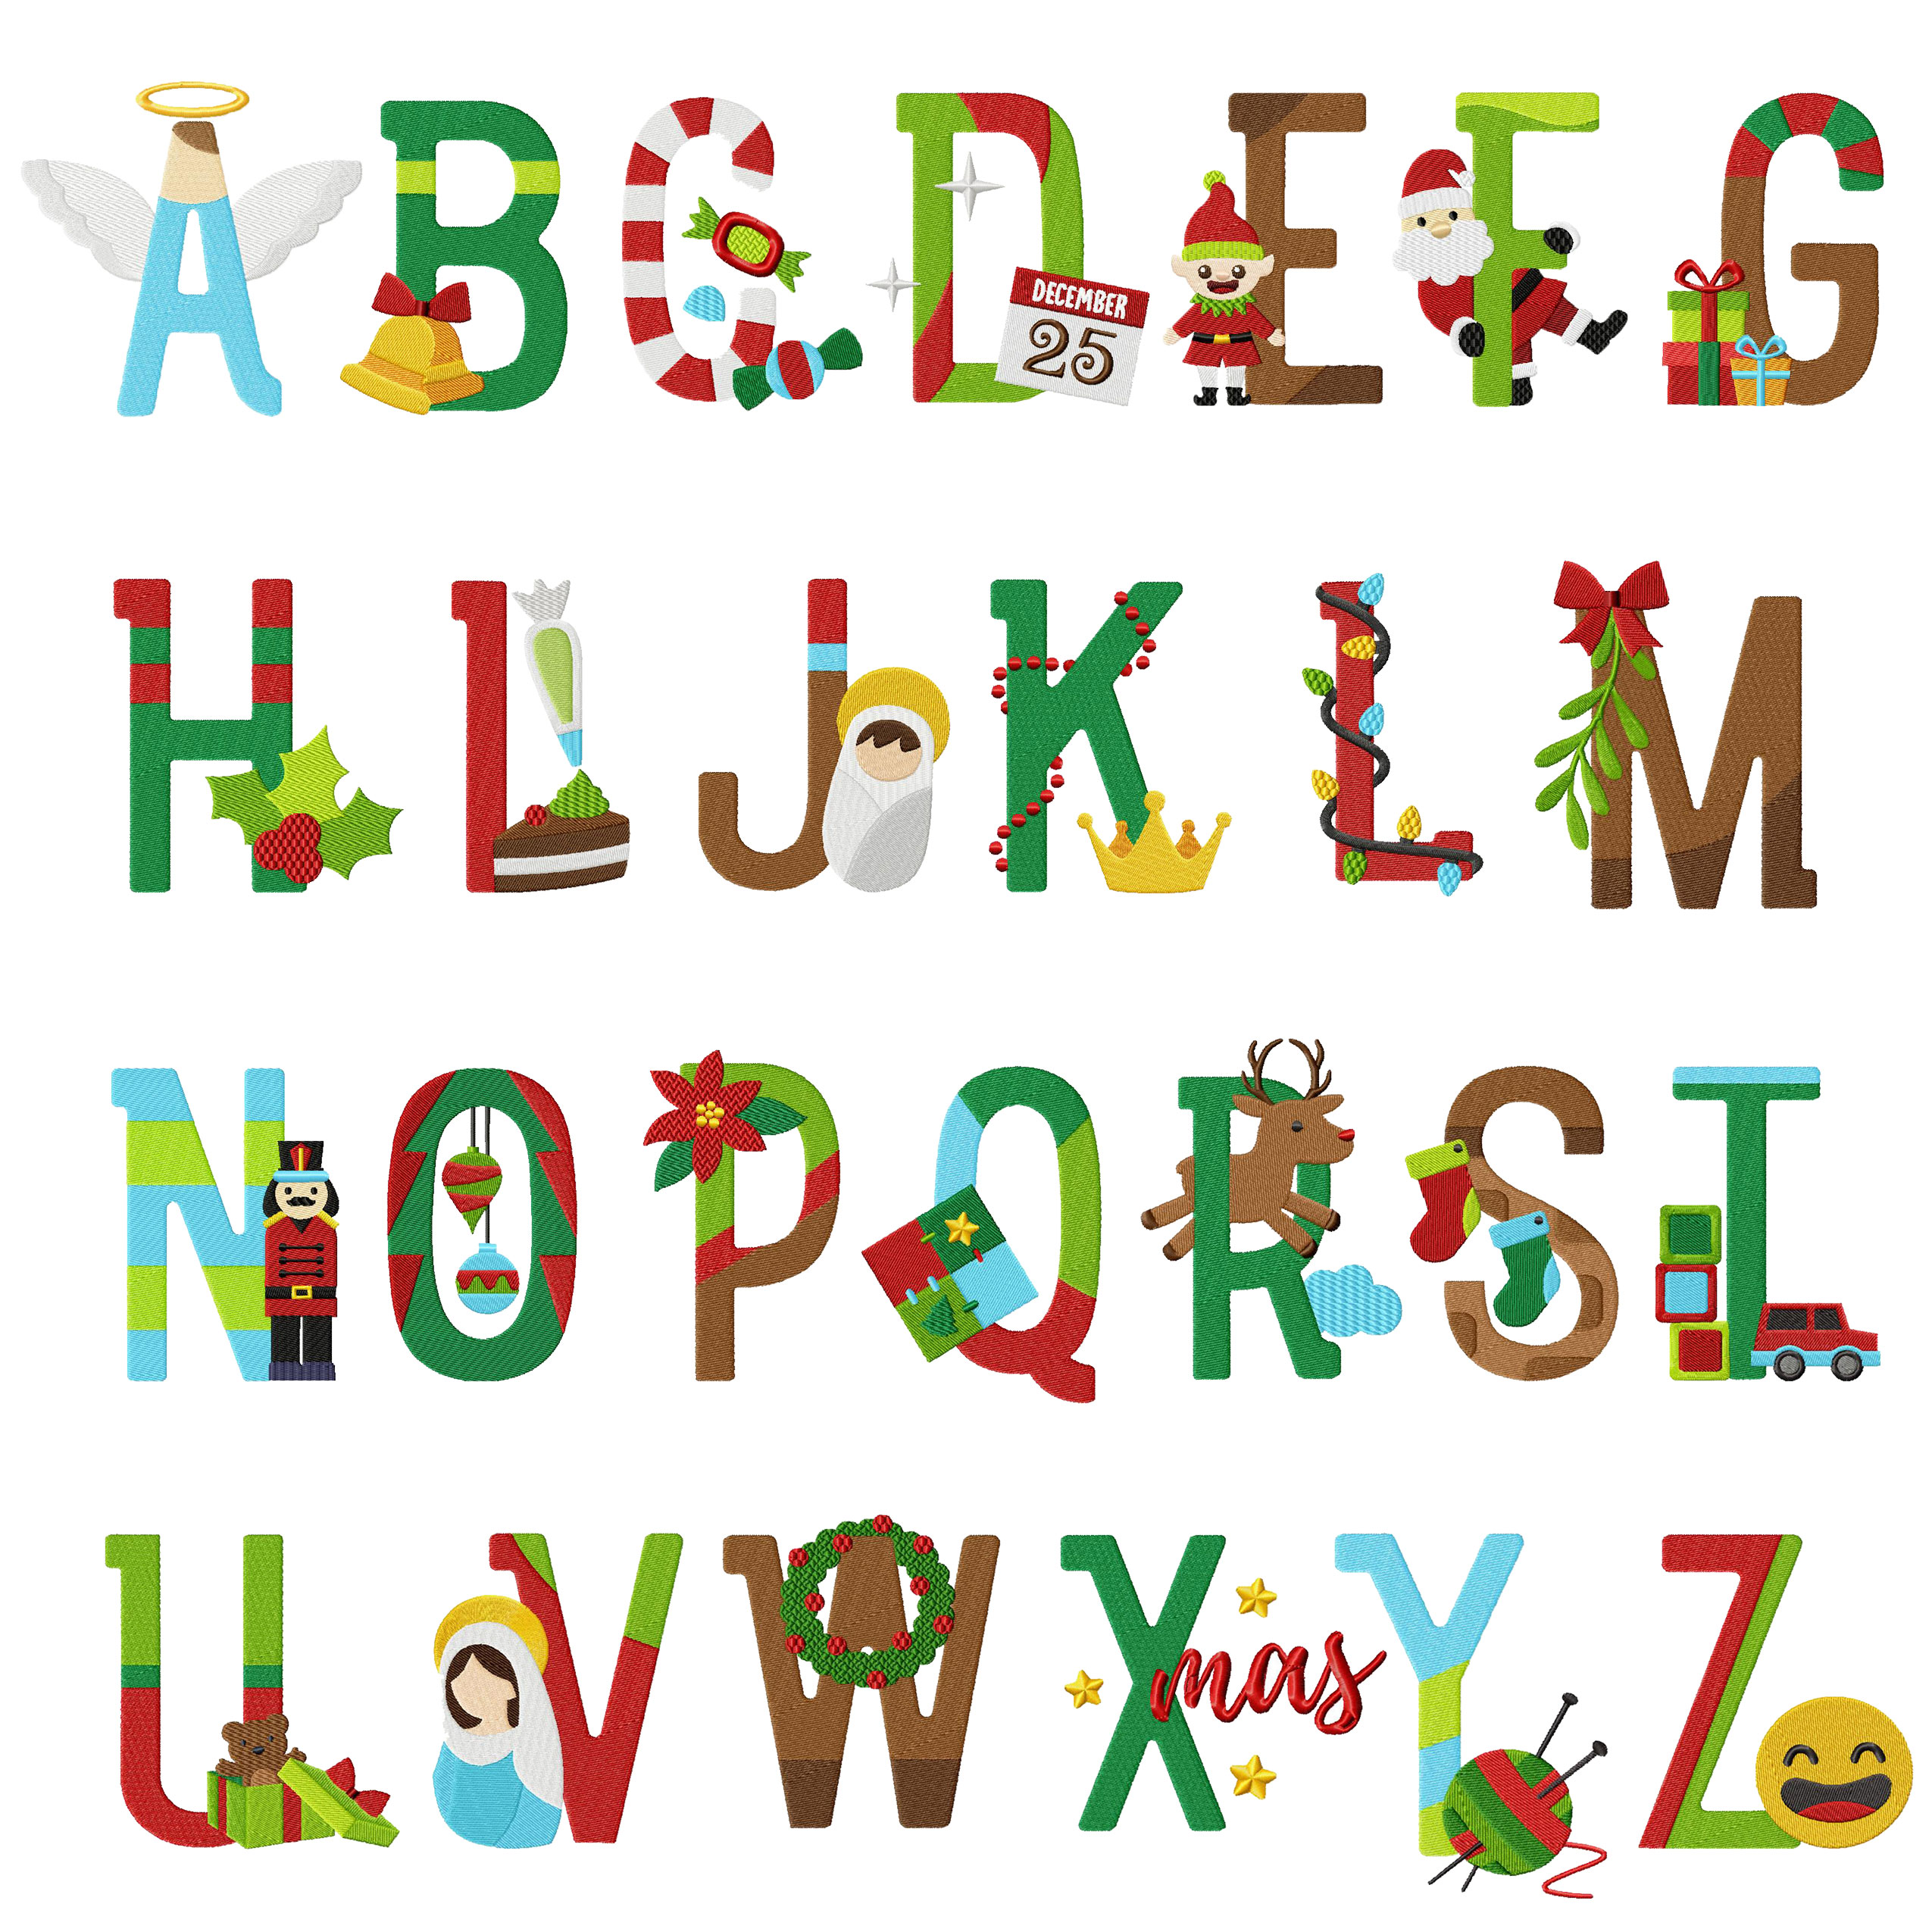 26 Christmas Alphabet Holiday Pack Embroidery Super Deal